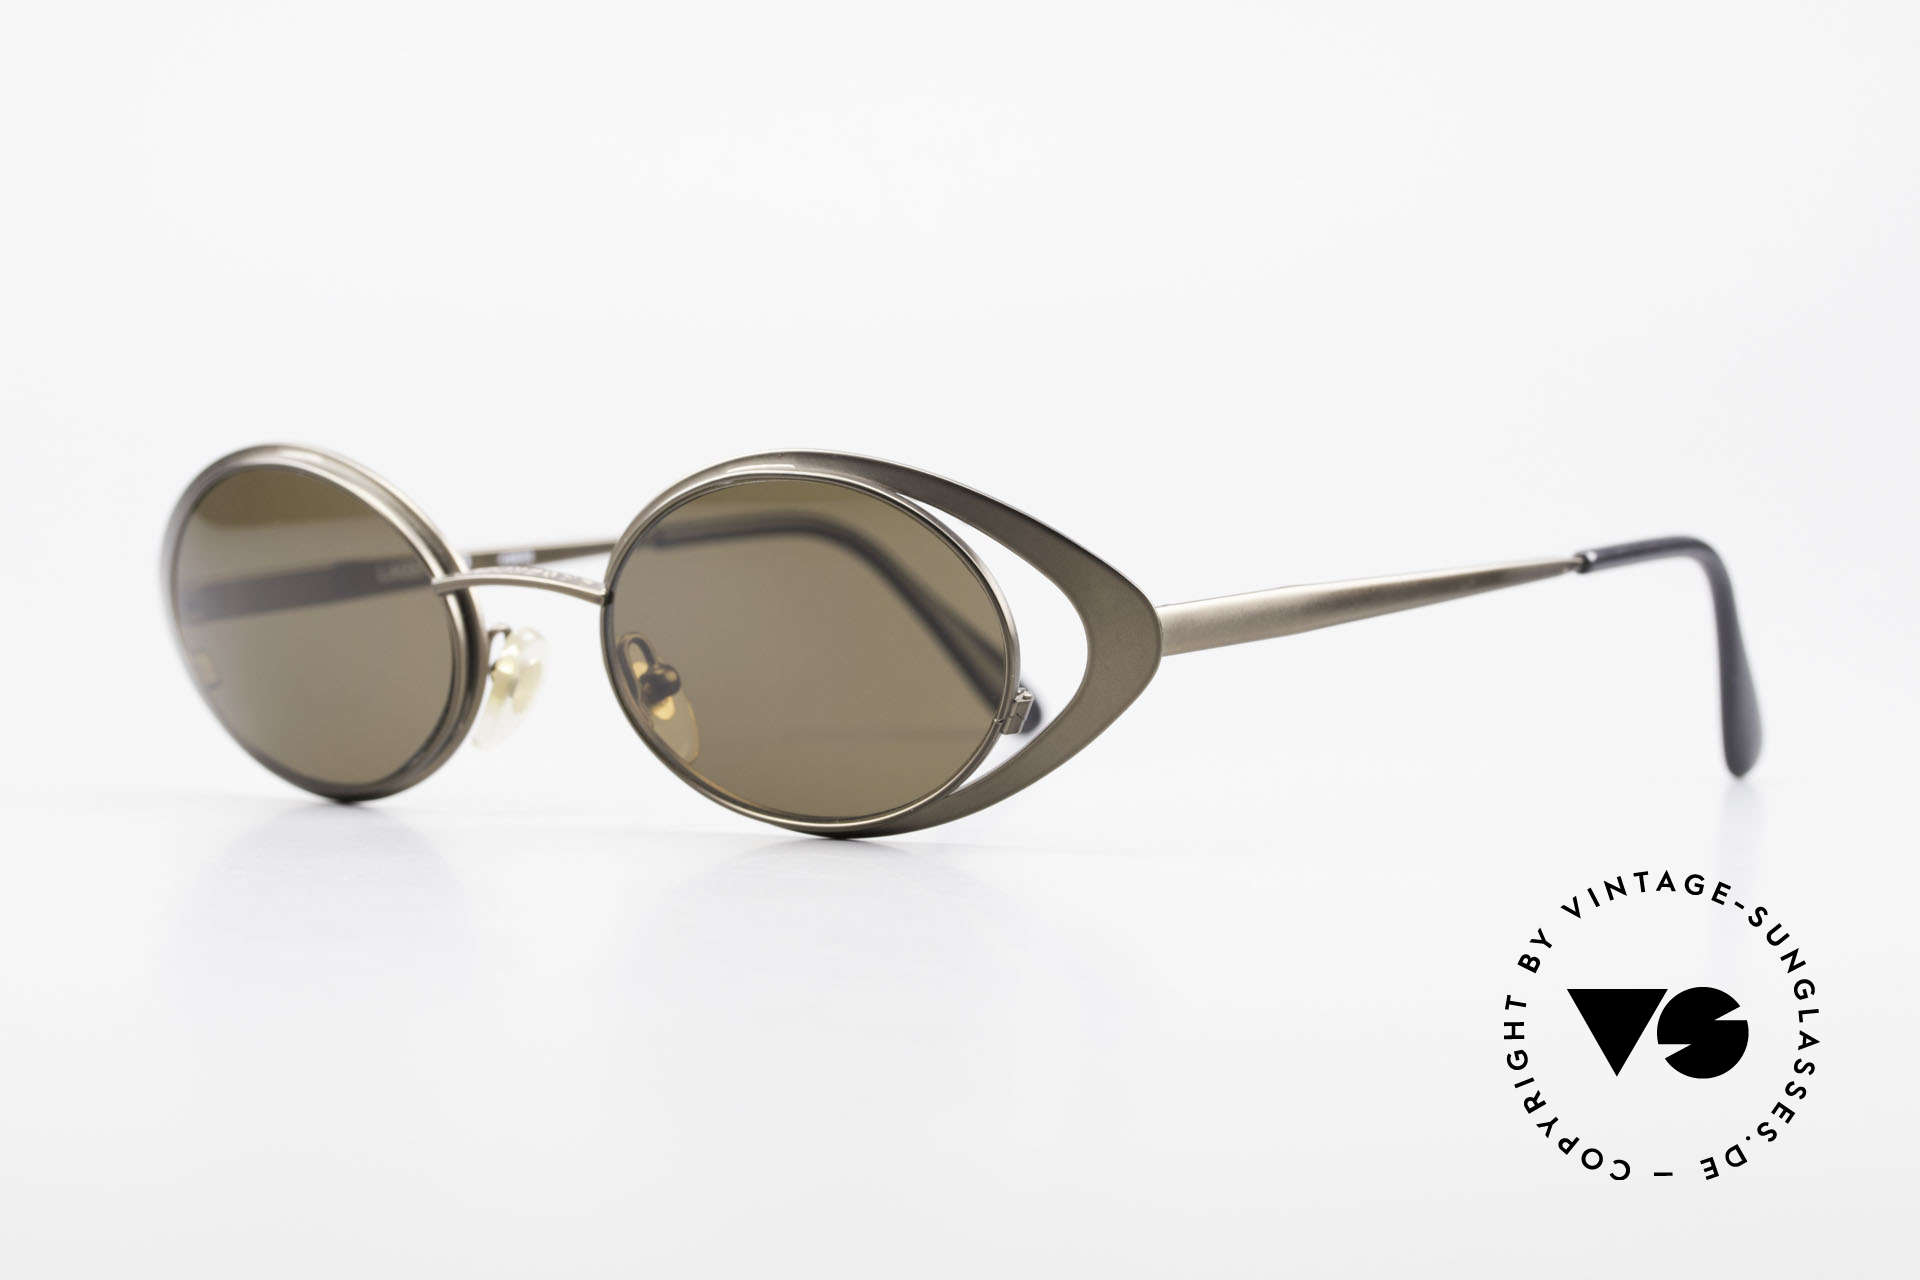 Karl Lagerfeld 4136 Oval 90's Designer Shades, monolithic design (true vintage) - You must feel this!, Made for Women